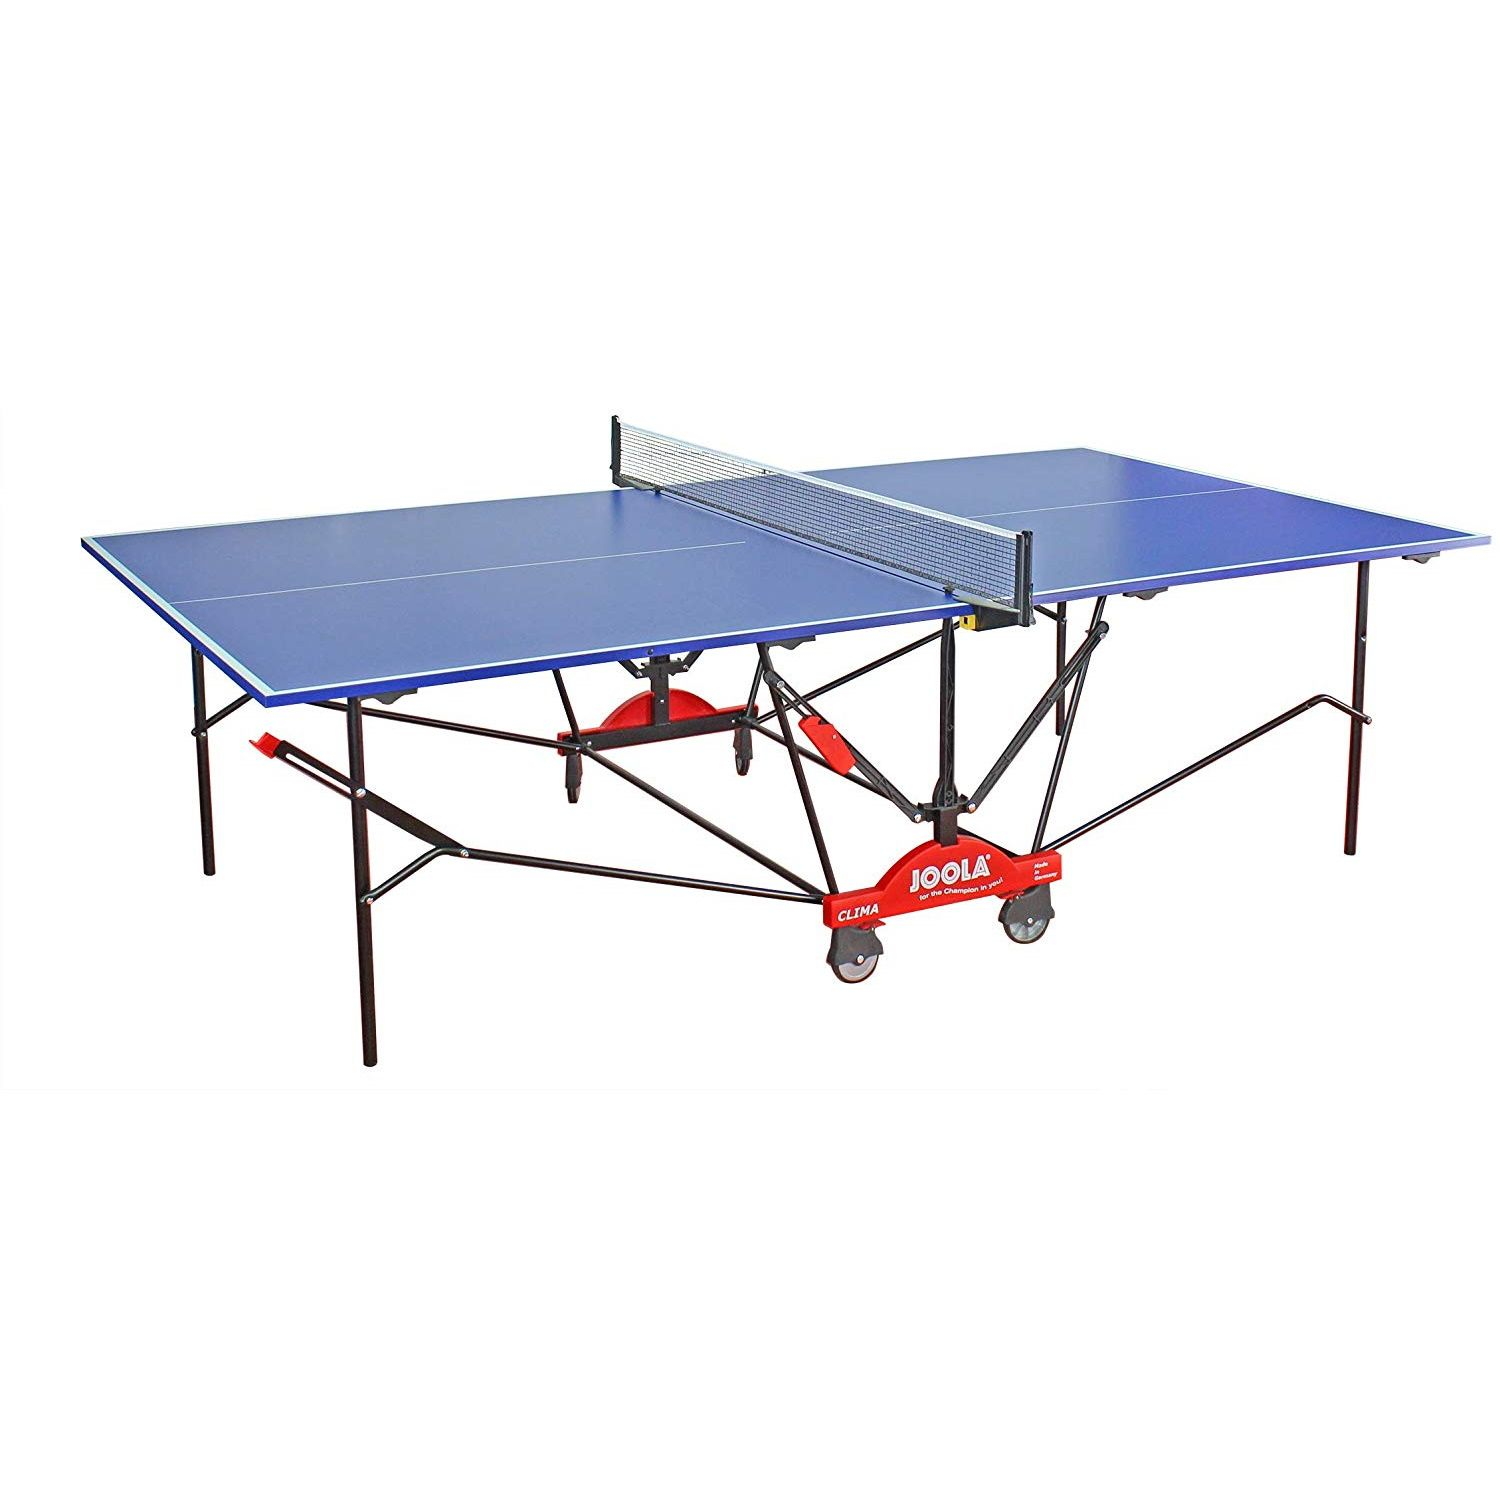 Joola Clima Outdoor Tennis Table tenisa galds